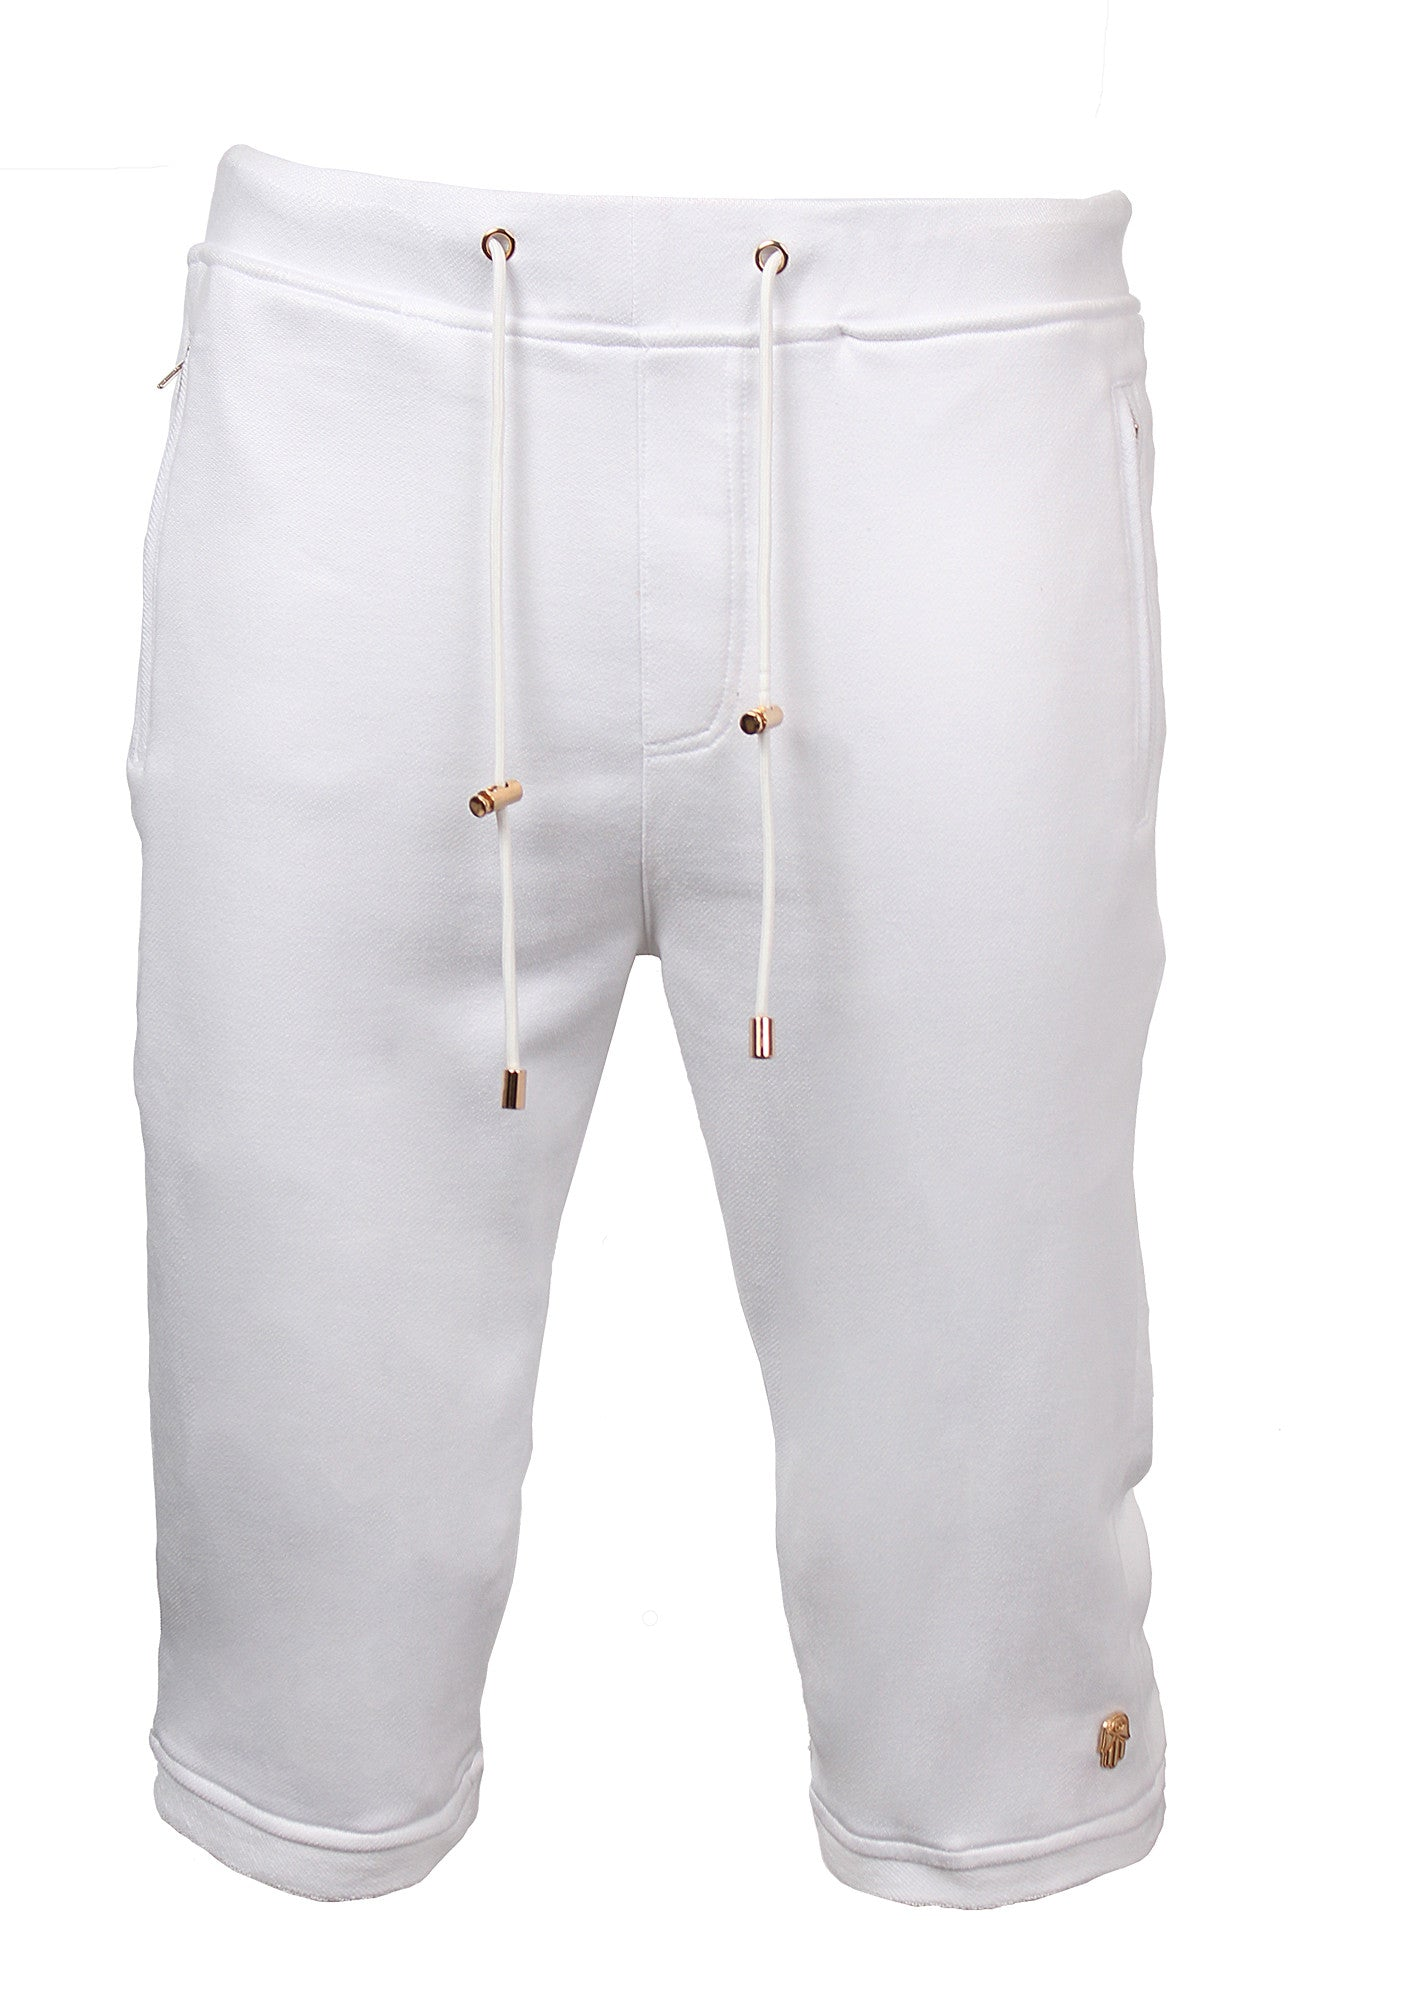 Terry Suede Elongated Shorts with White Gold Accents